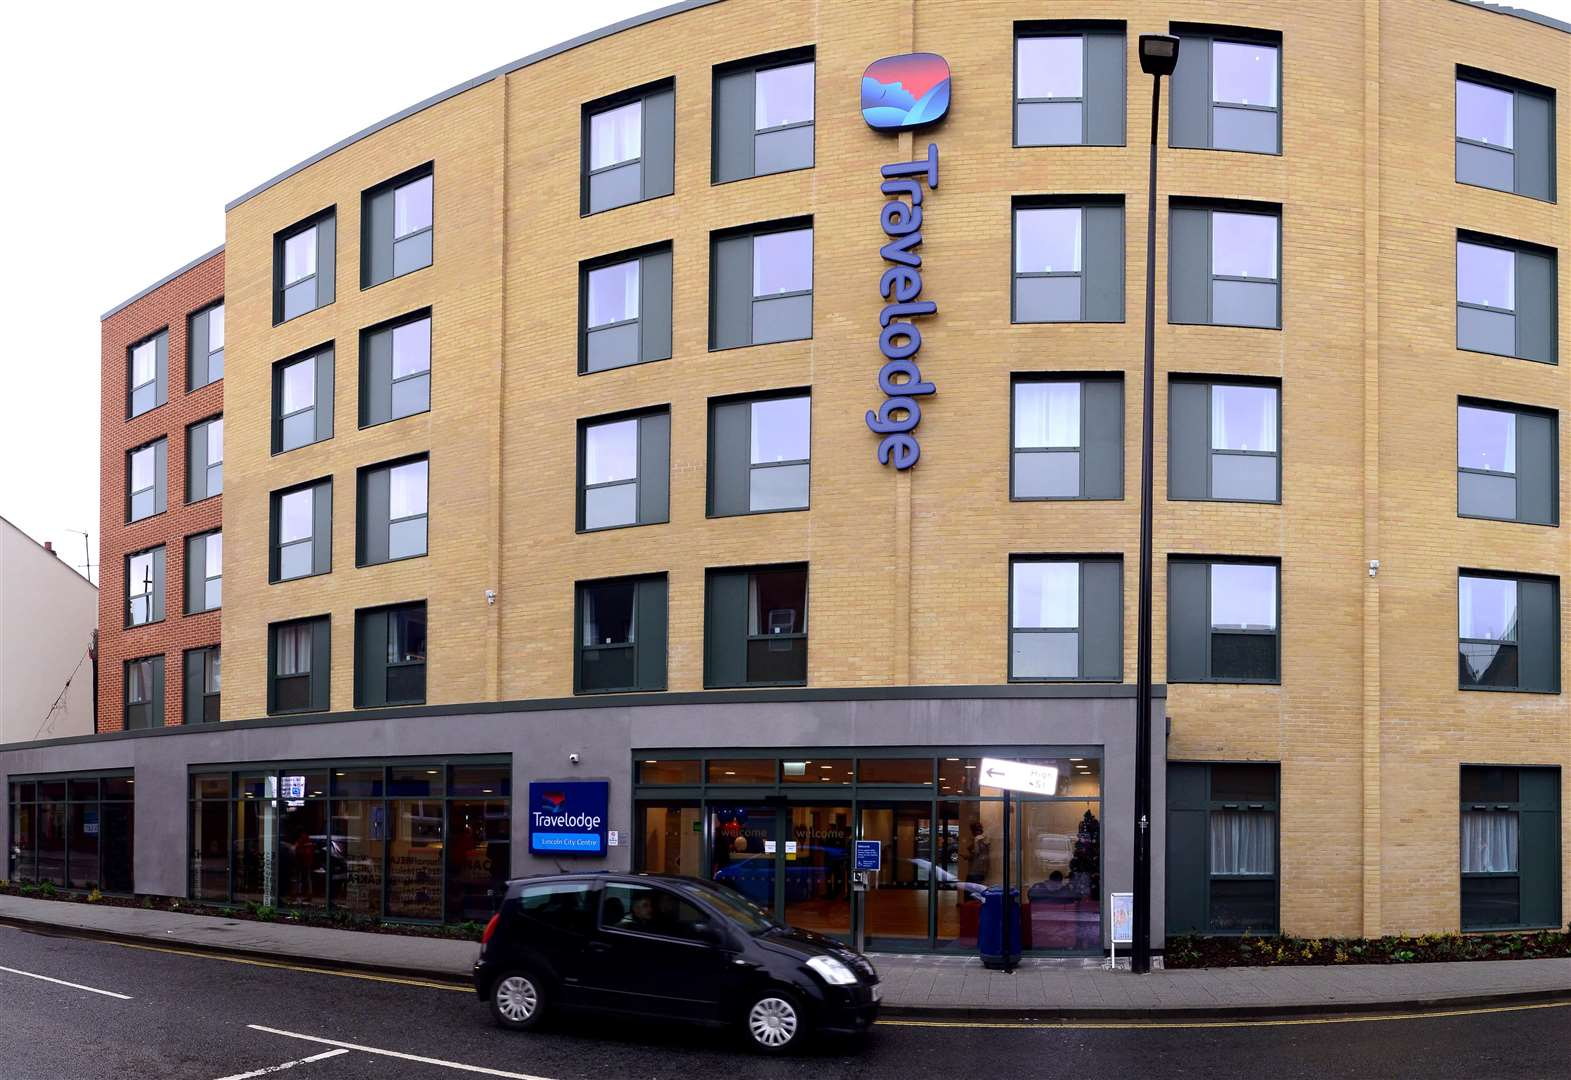 Budget hotel chain interested in Stamford